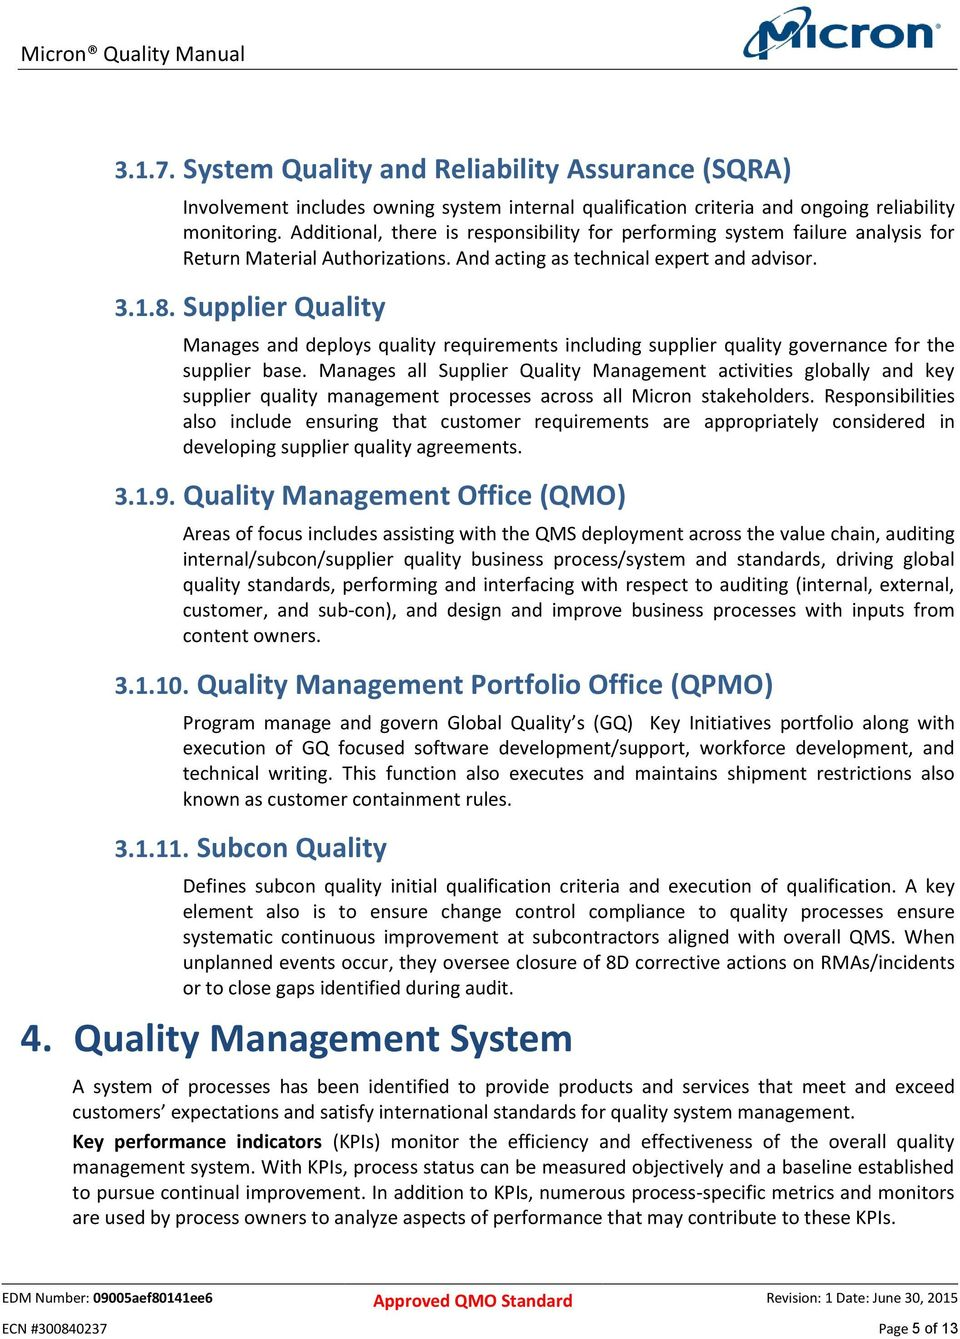 Supplier Quality Manages and deploys quality requirements including supplier quality governance for the supplier base.